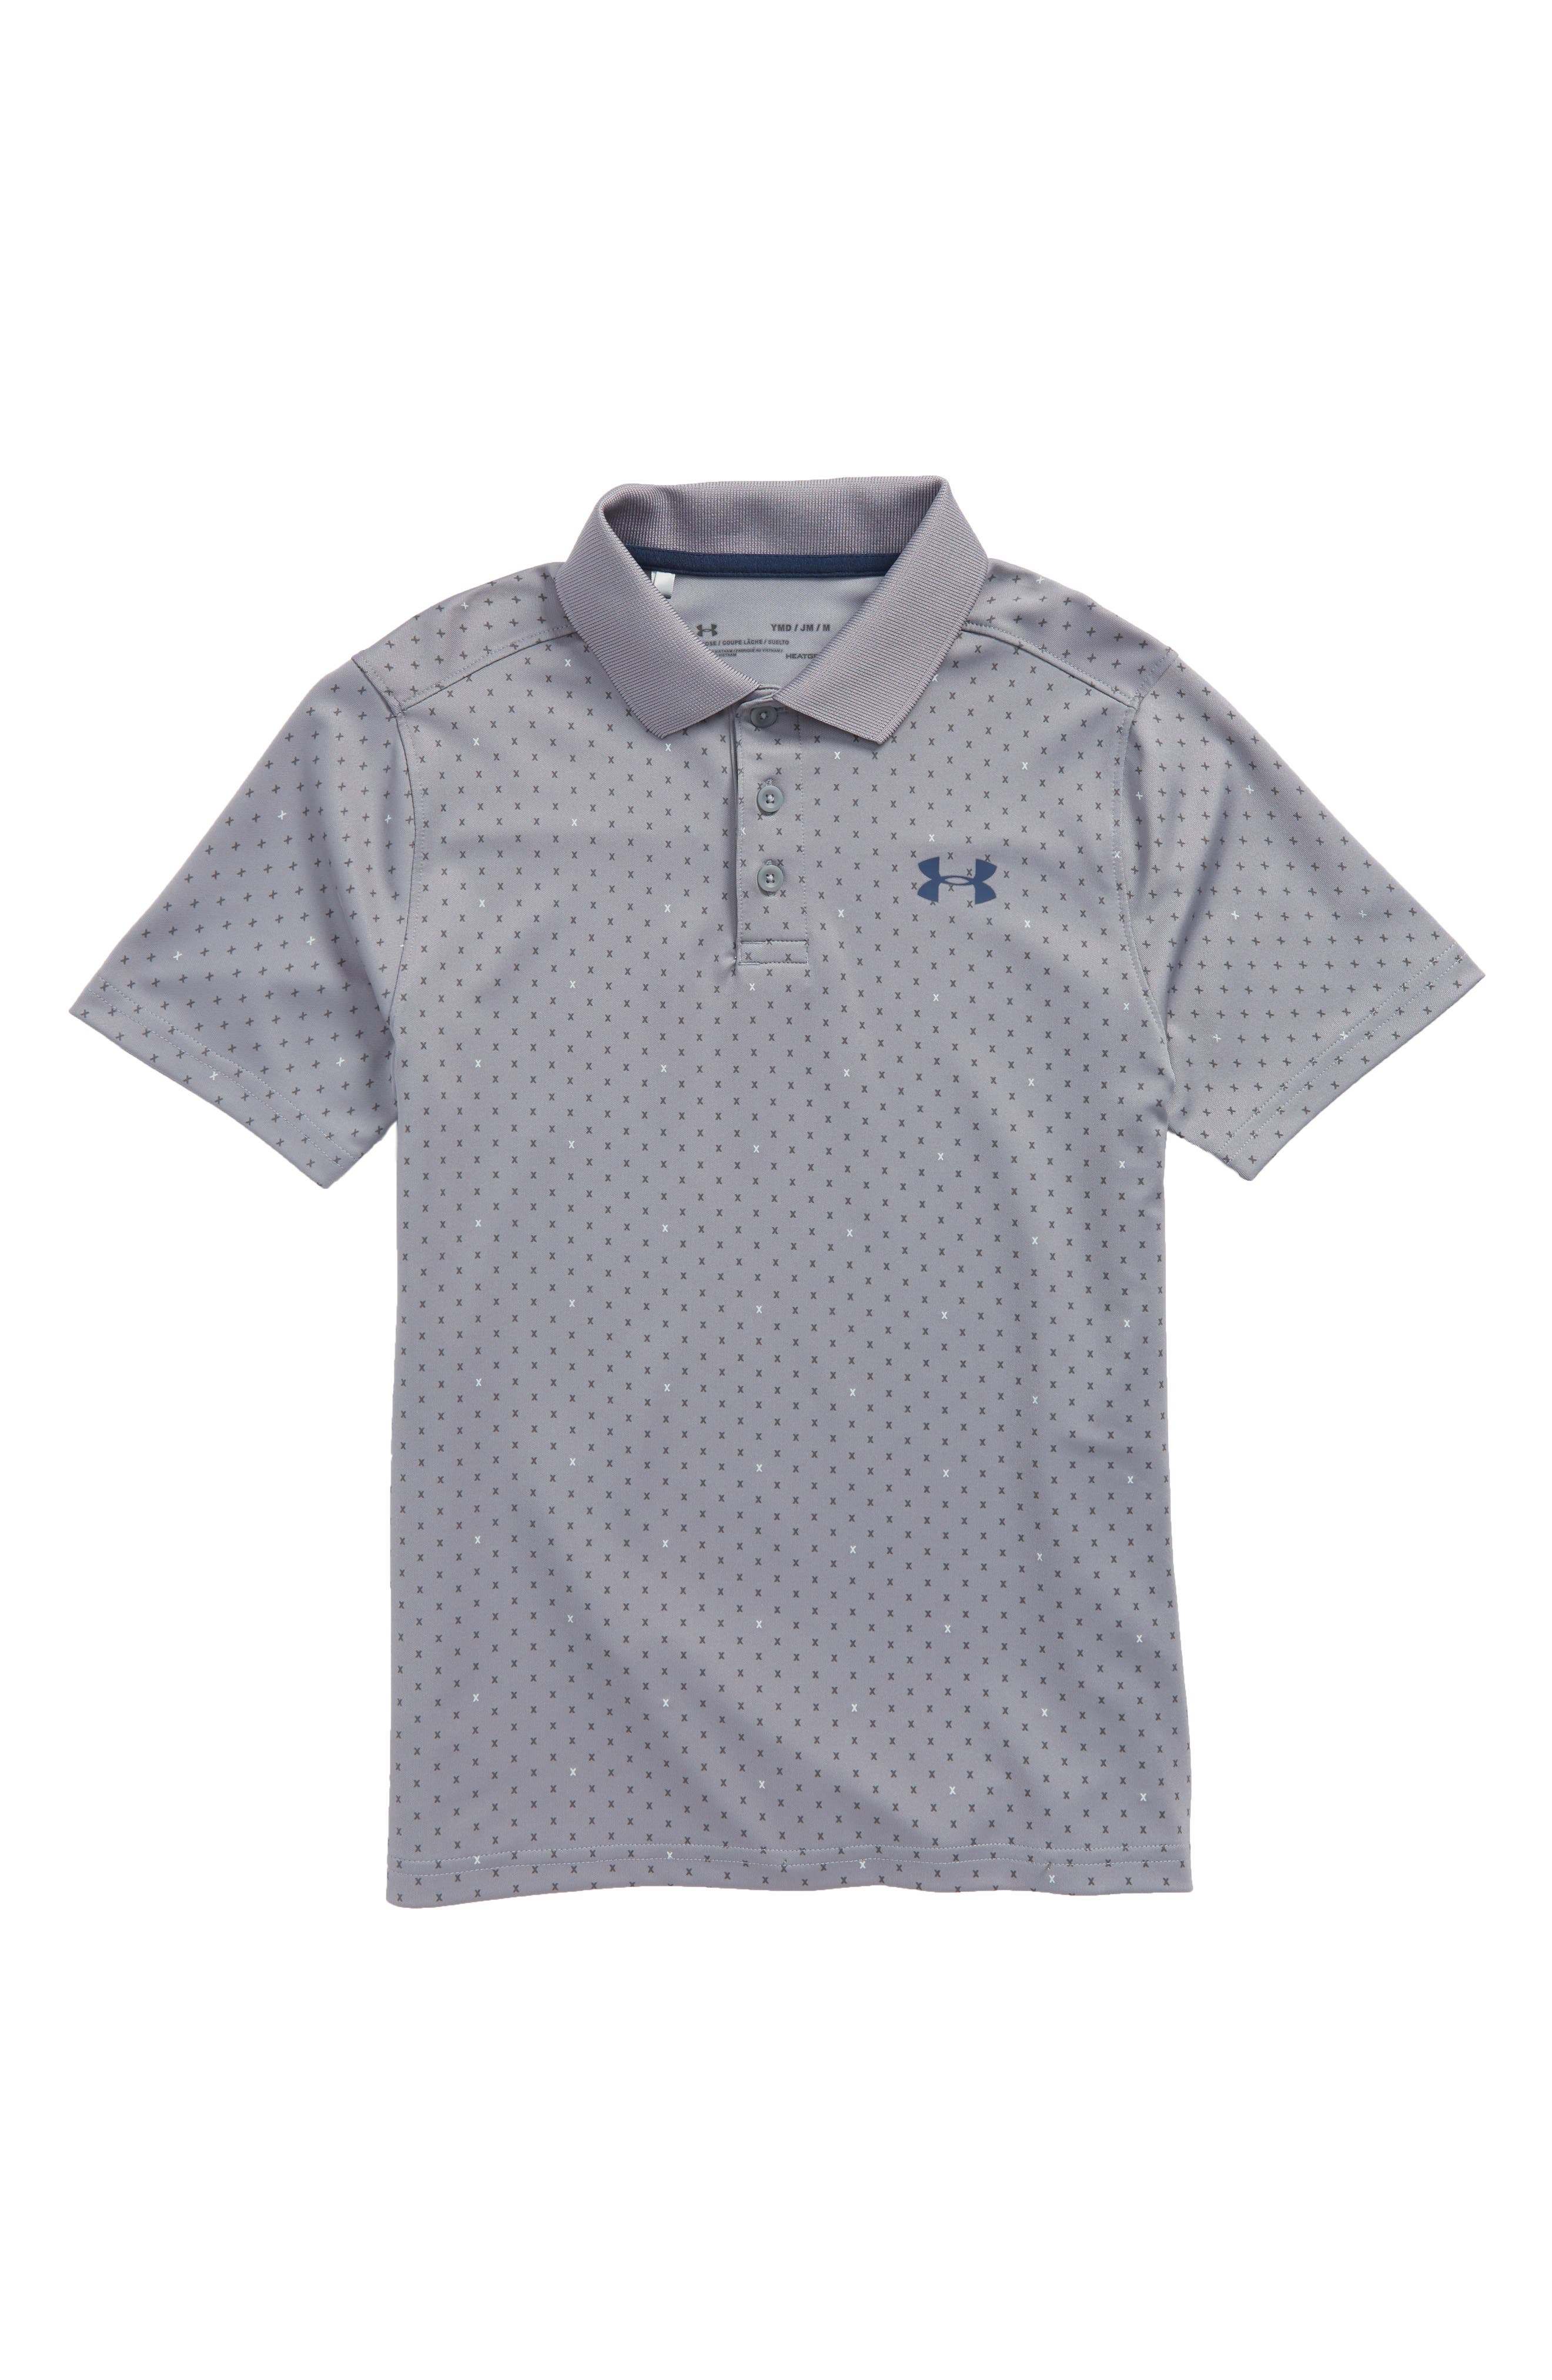 HeatGear<sup>®</sup> Polo,                             Main thumbnail 1, color,                             020